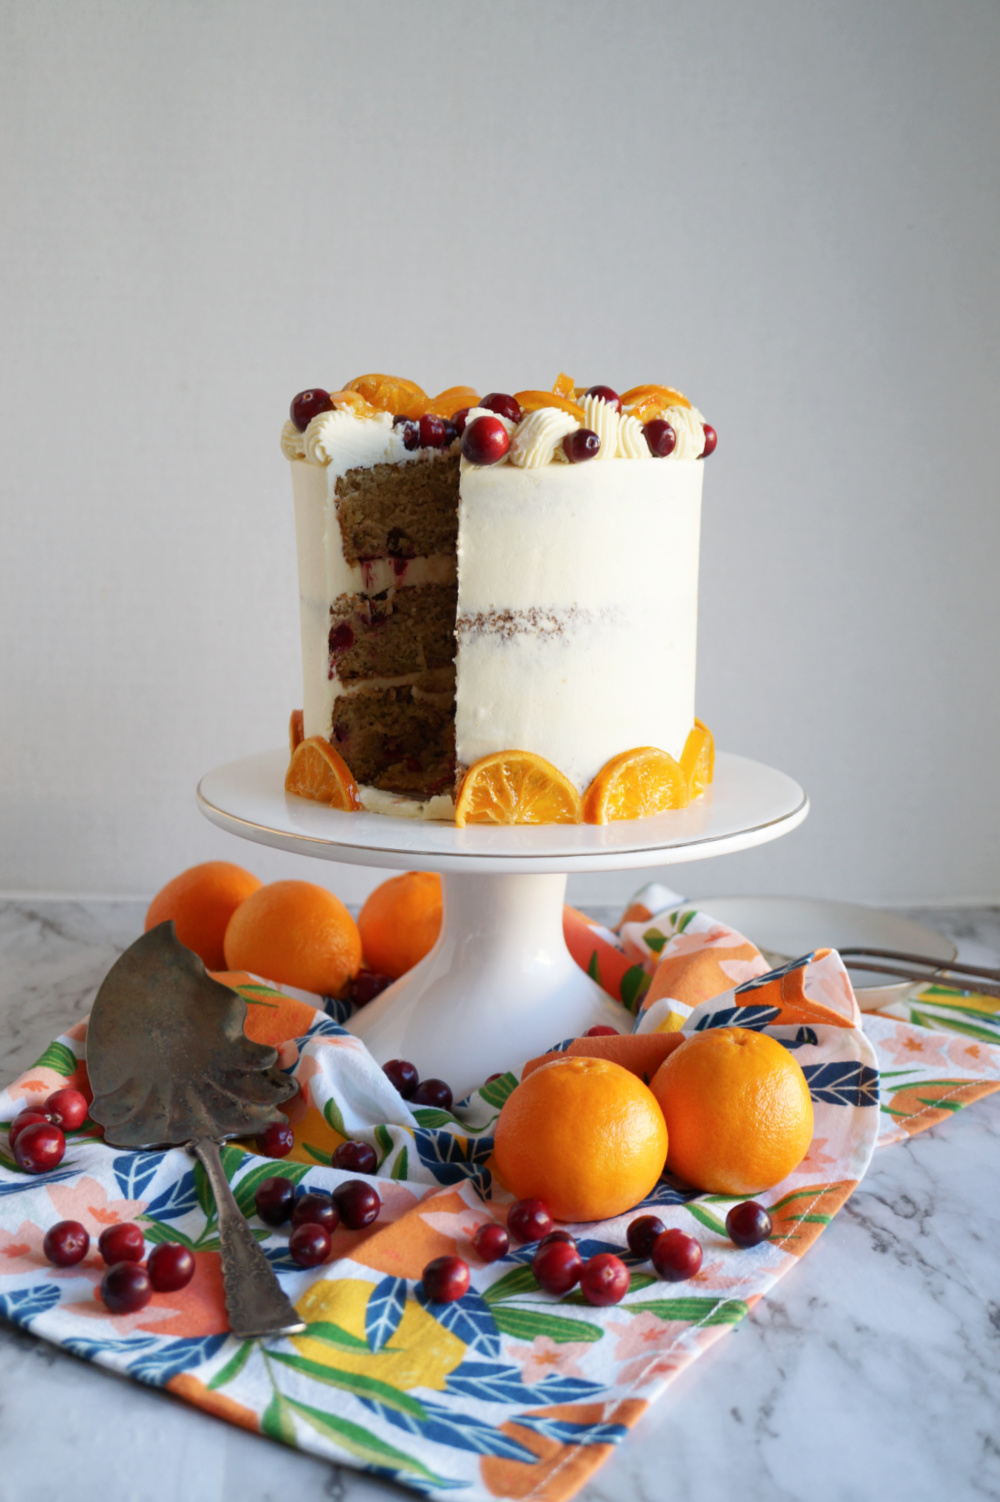 cranberry clementine cake with slice cut out